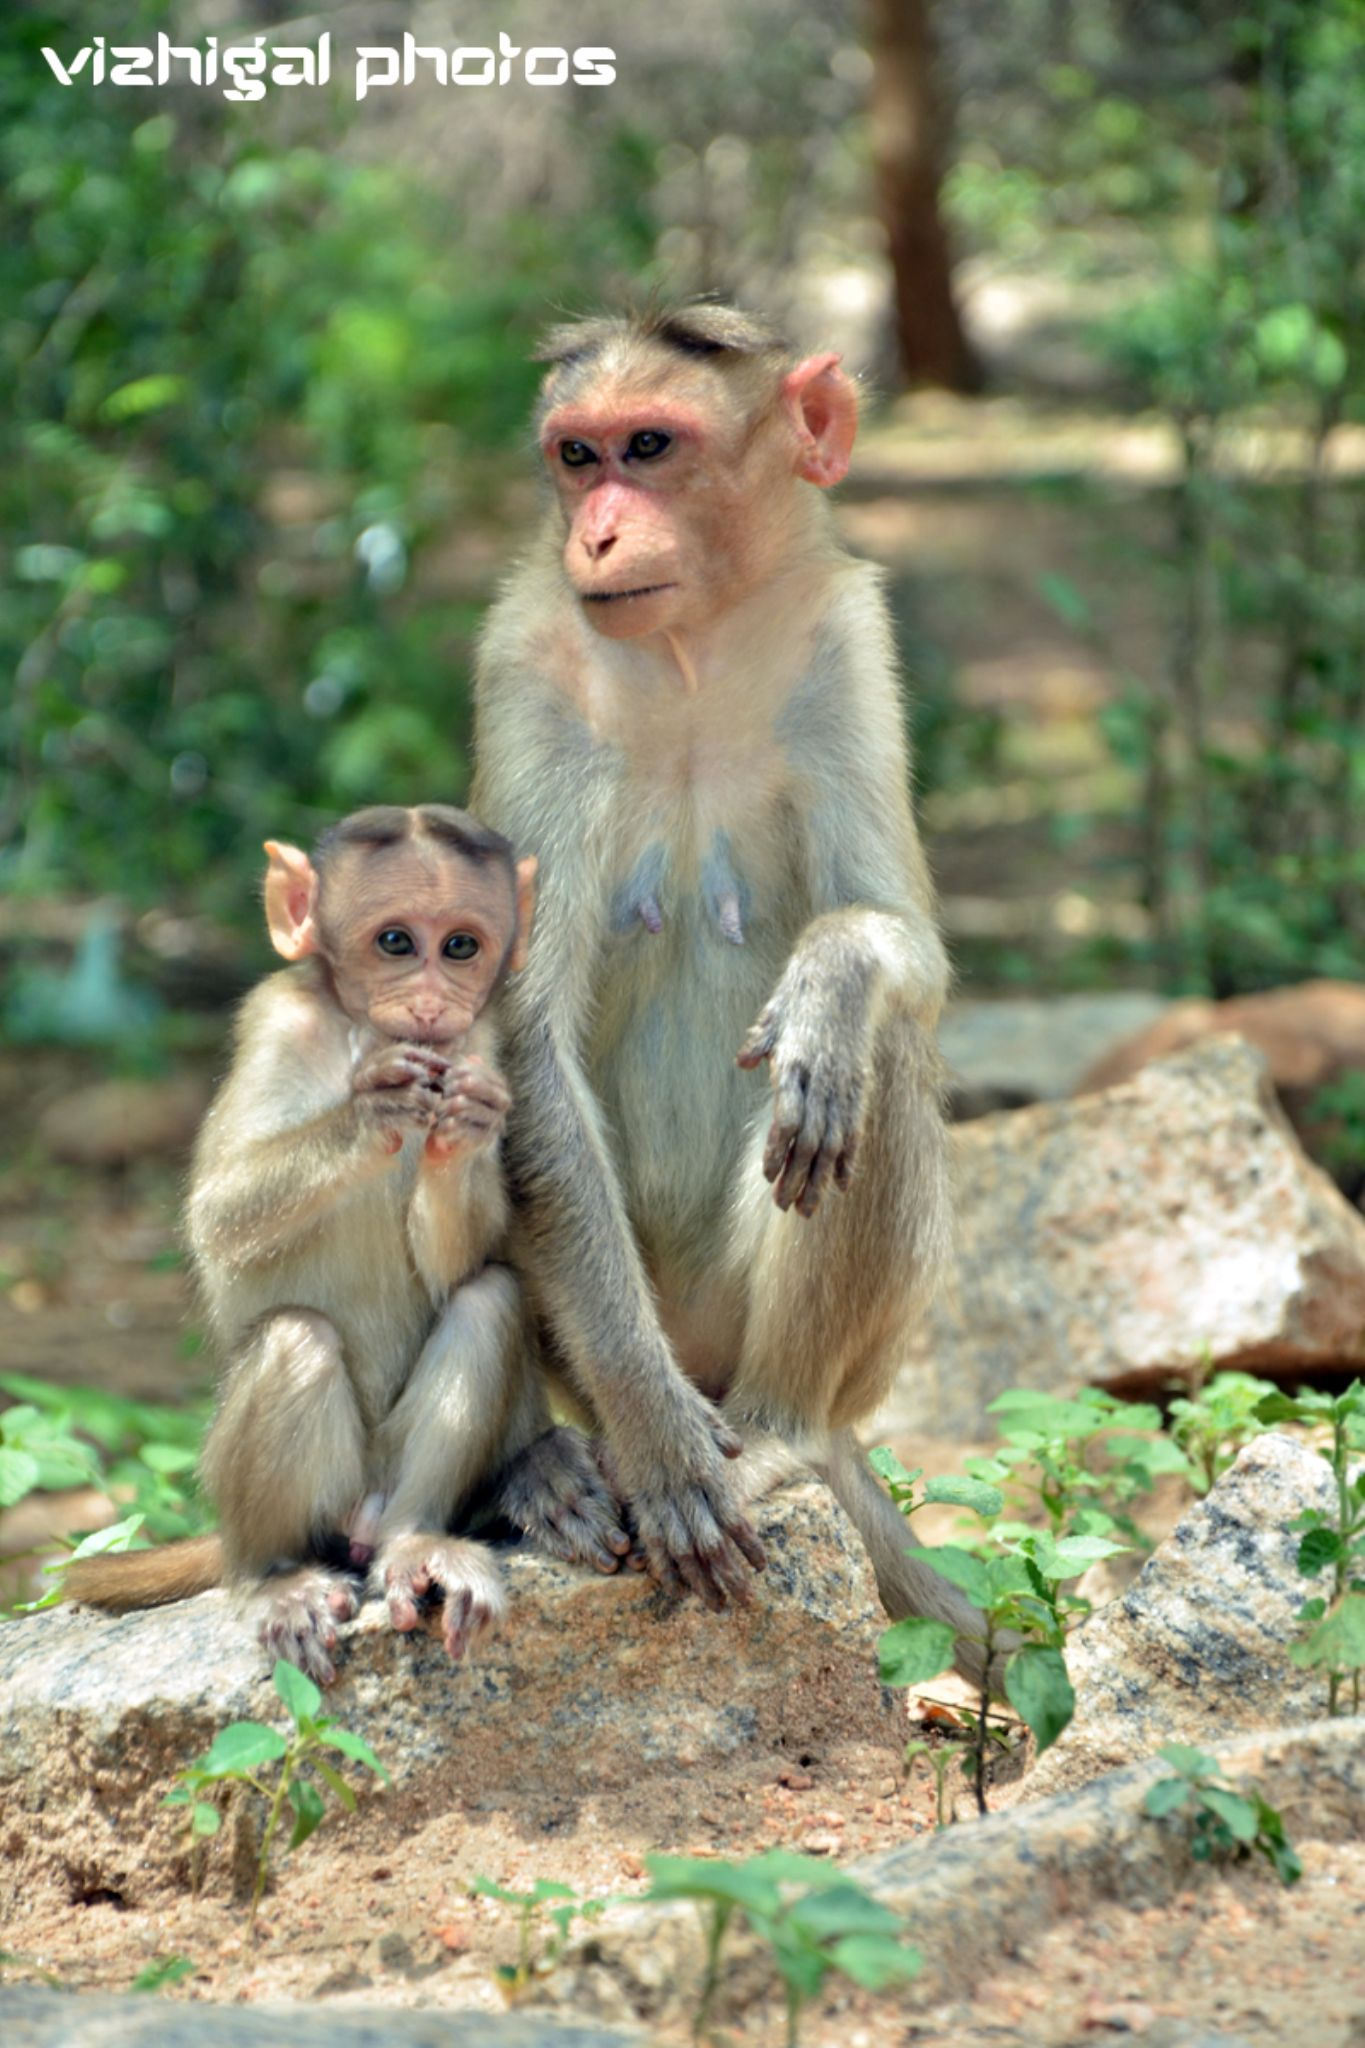 MOM AND SON by Vizhigal Photos